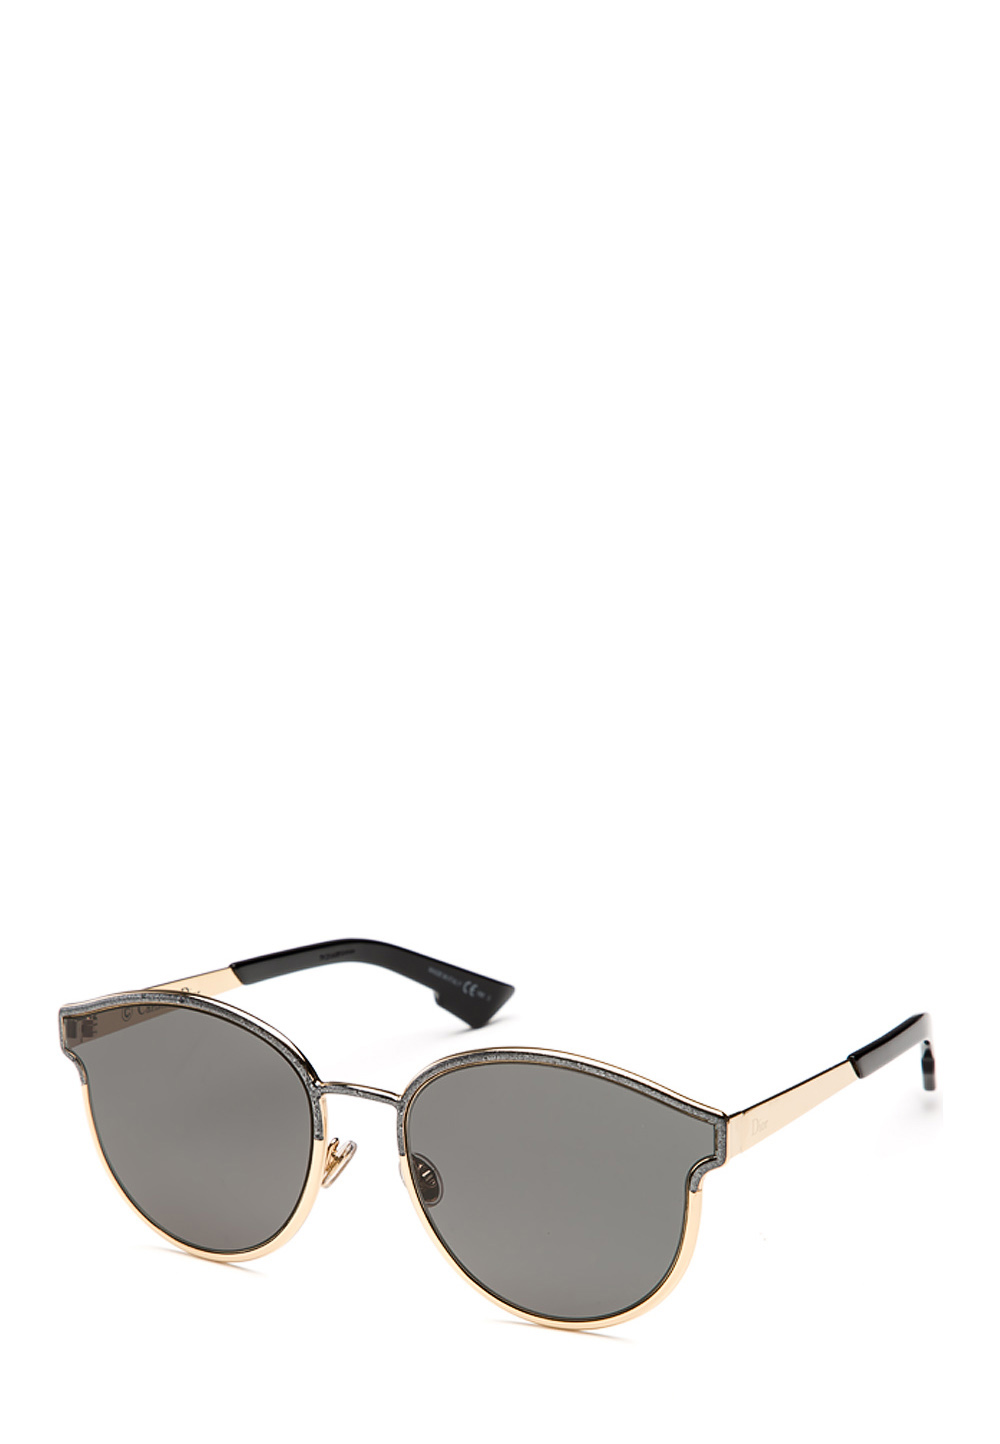 Sonnenbrille symmetric, UV 400, golden